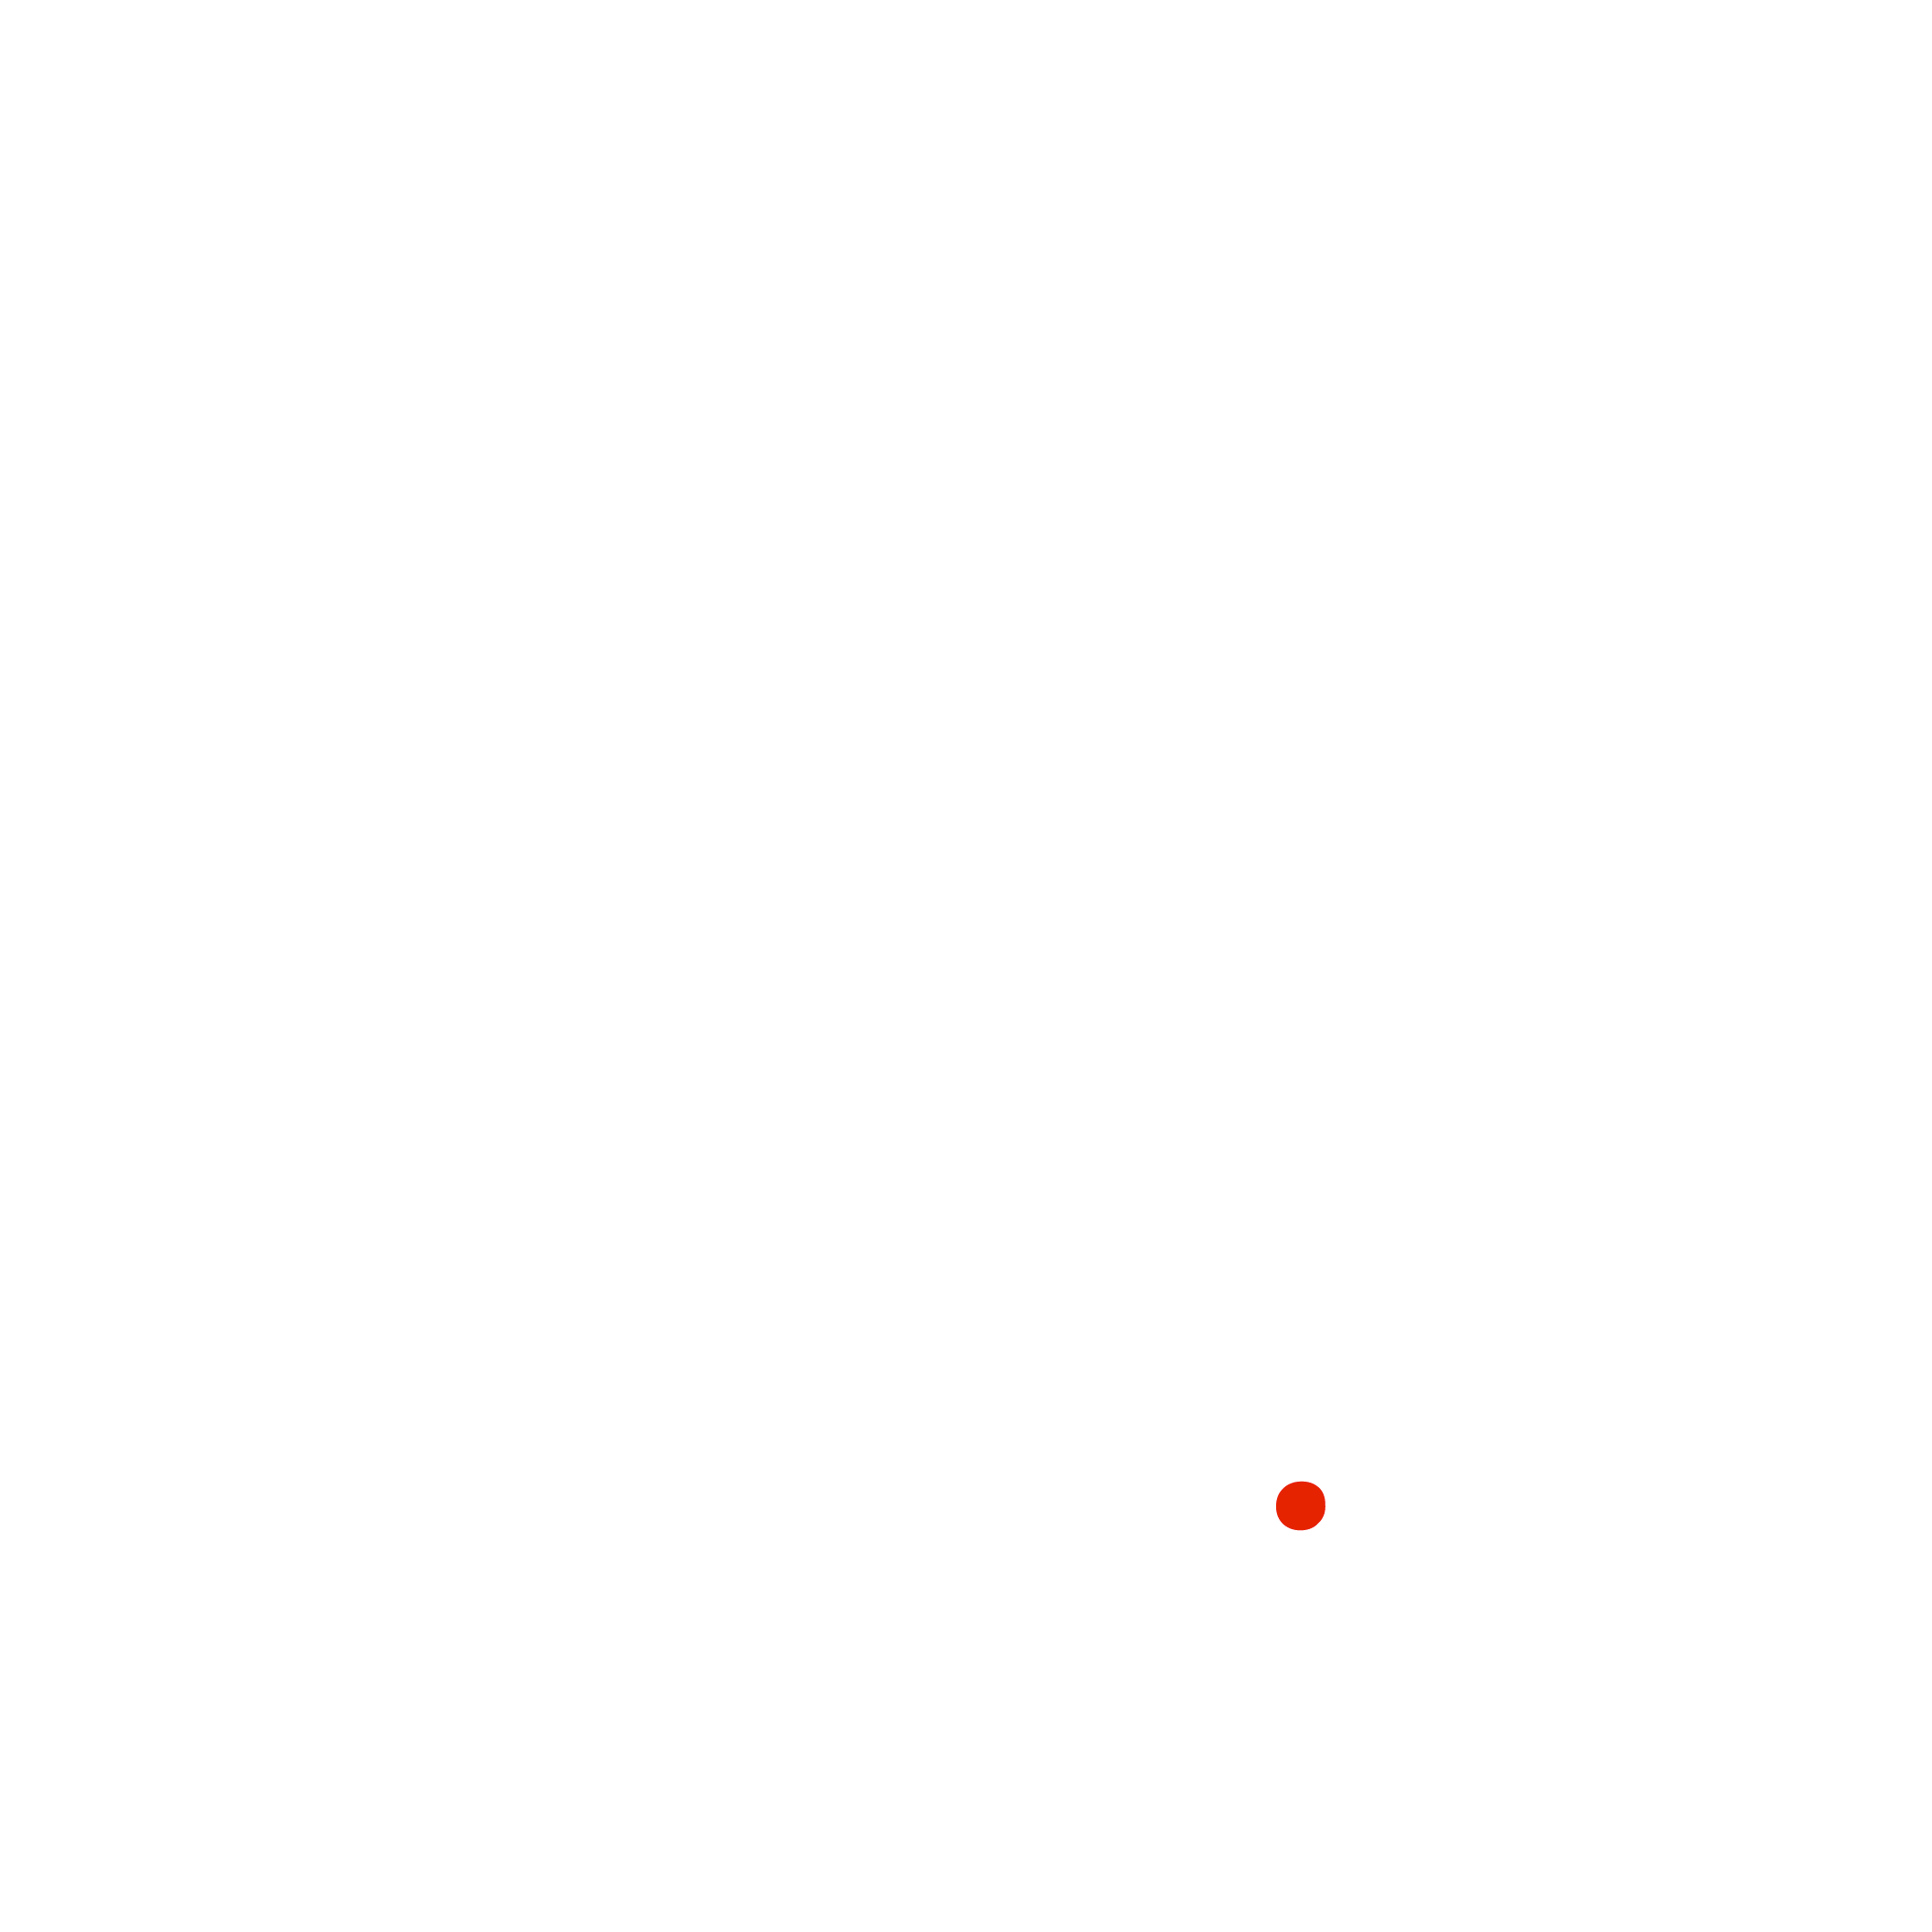 chambrenoire.fr